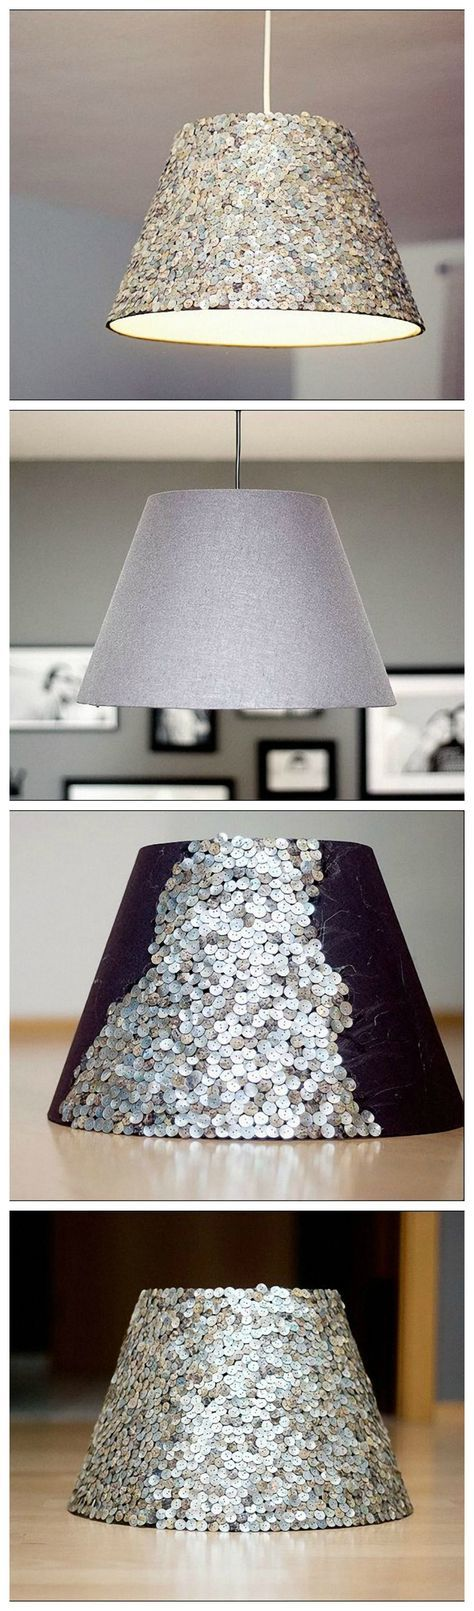 478 Best Diy Images On Pinterest Bricolage Creative Ideas And